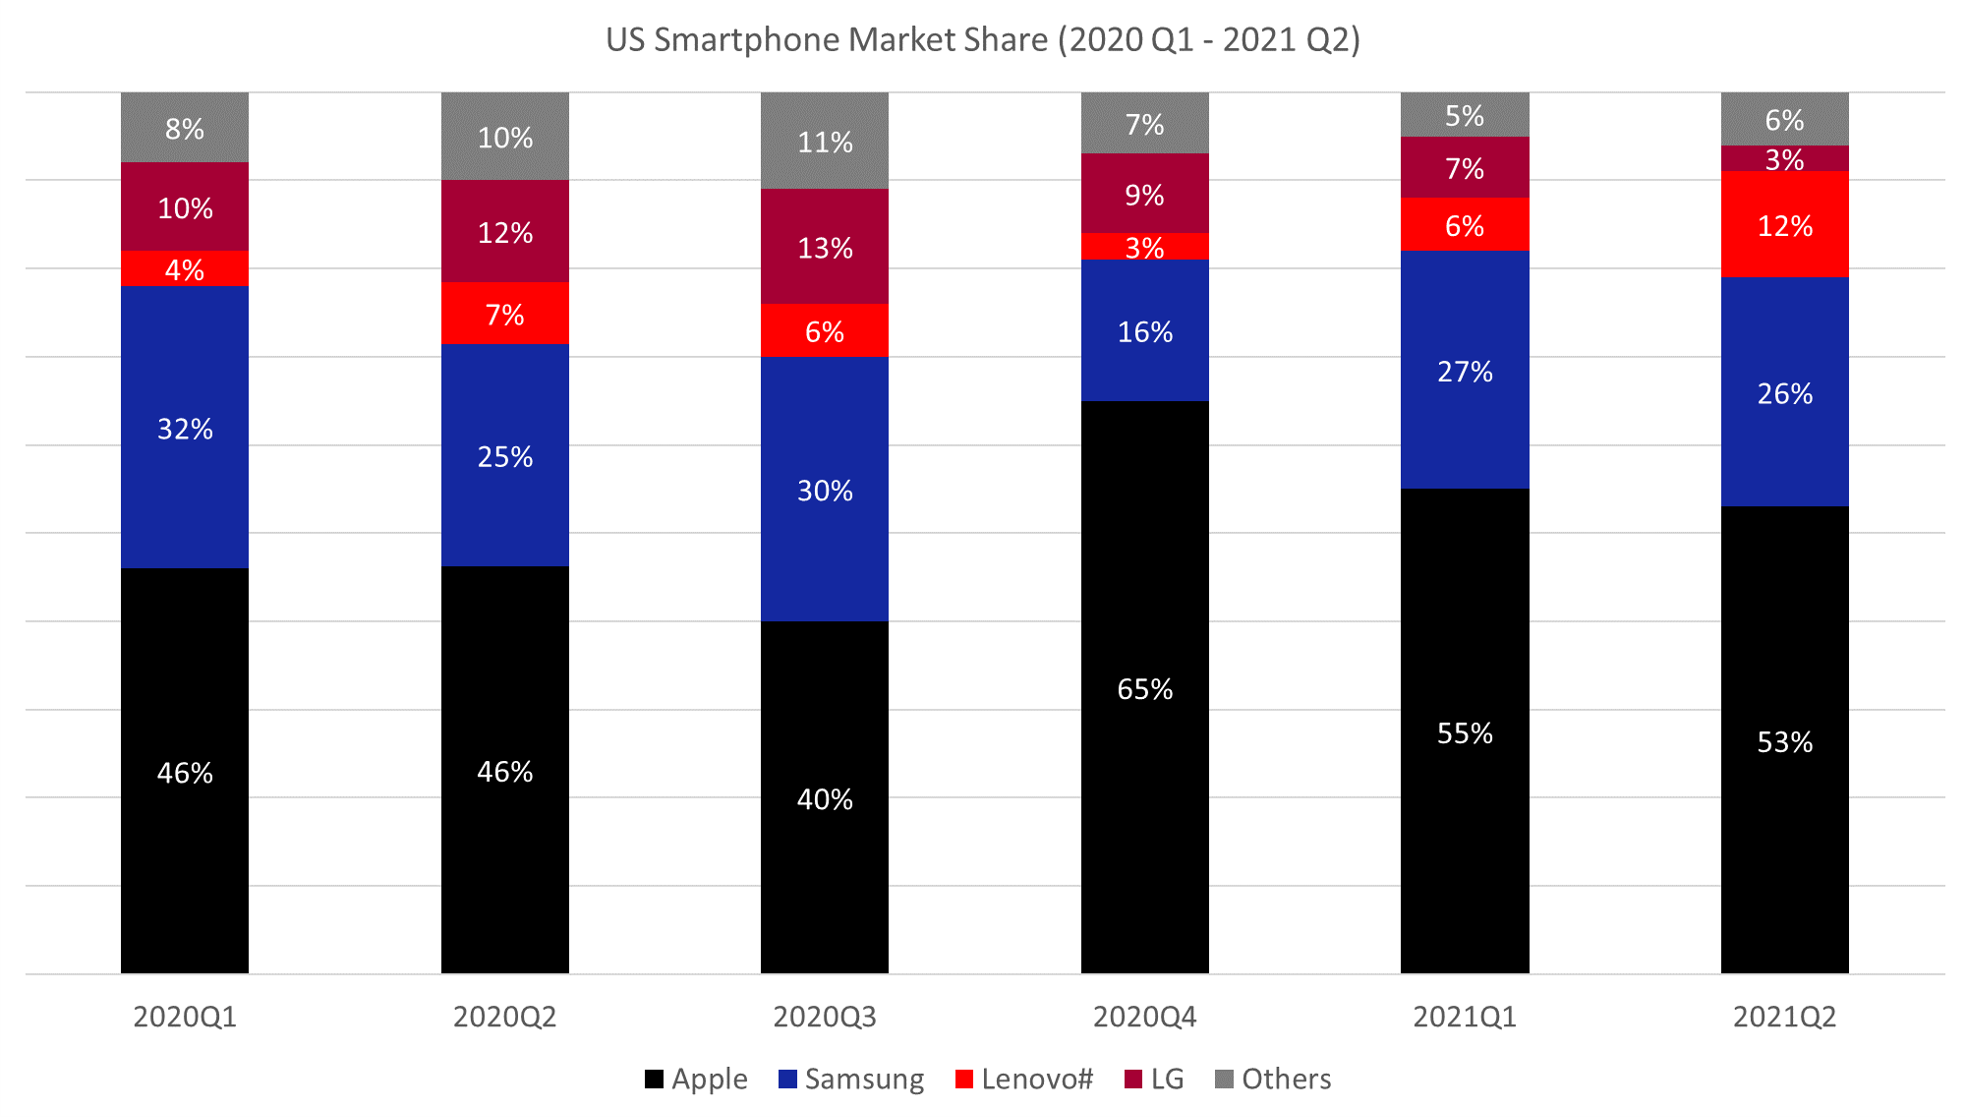 Counterpoint Research USA Smartphone Market Share Q2 2021